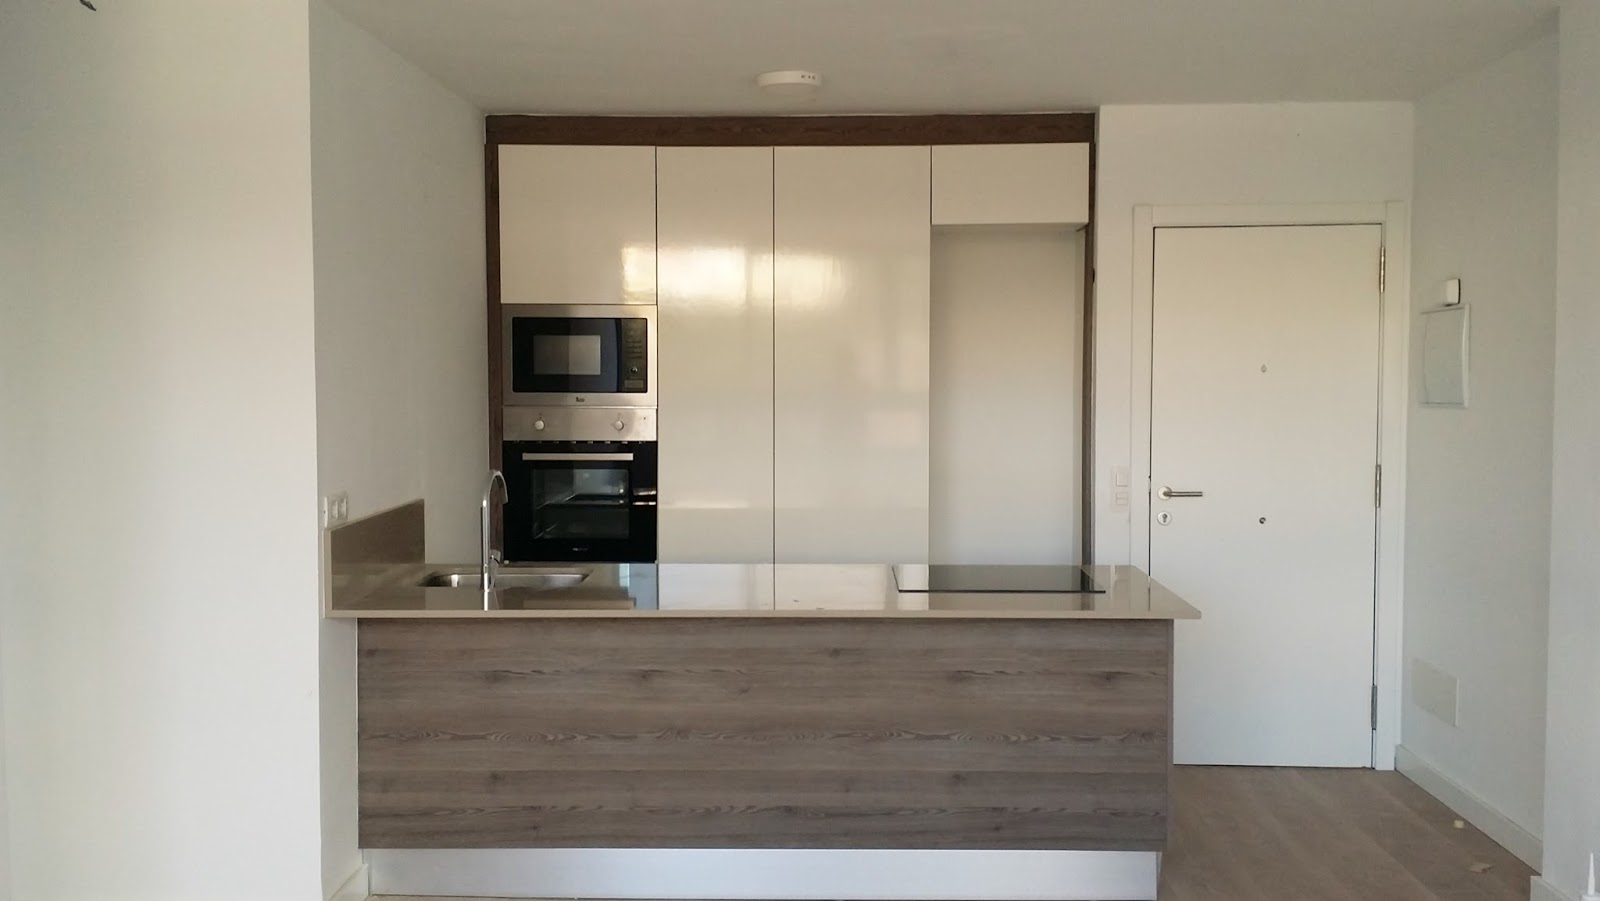 todas las cocinas diseadas por tatiana doria all kitchens have been designed by tatiana doria